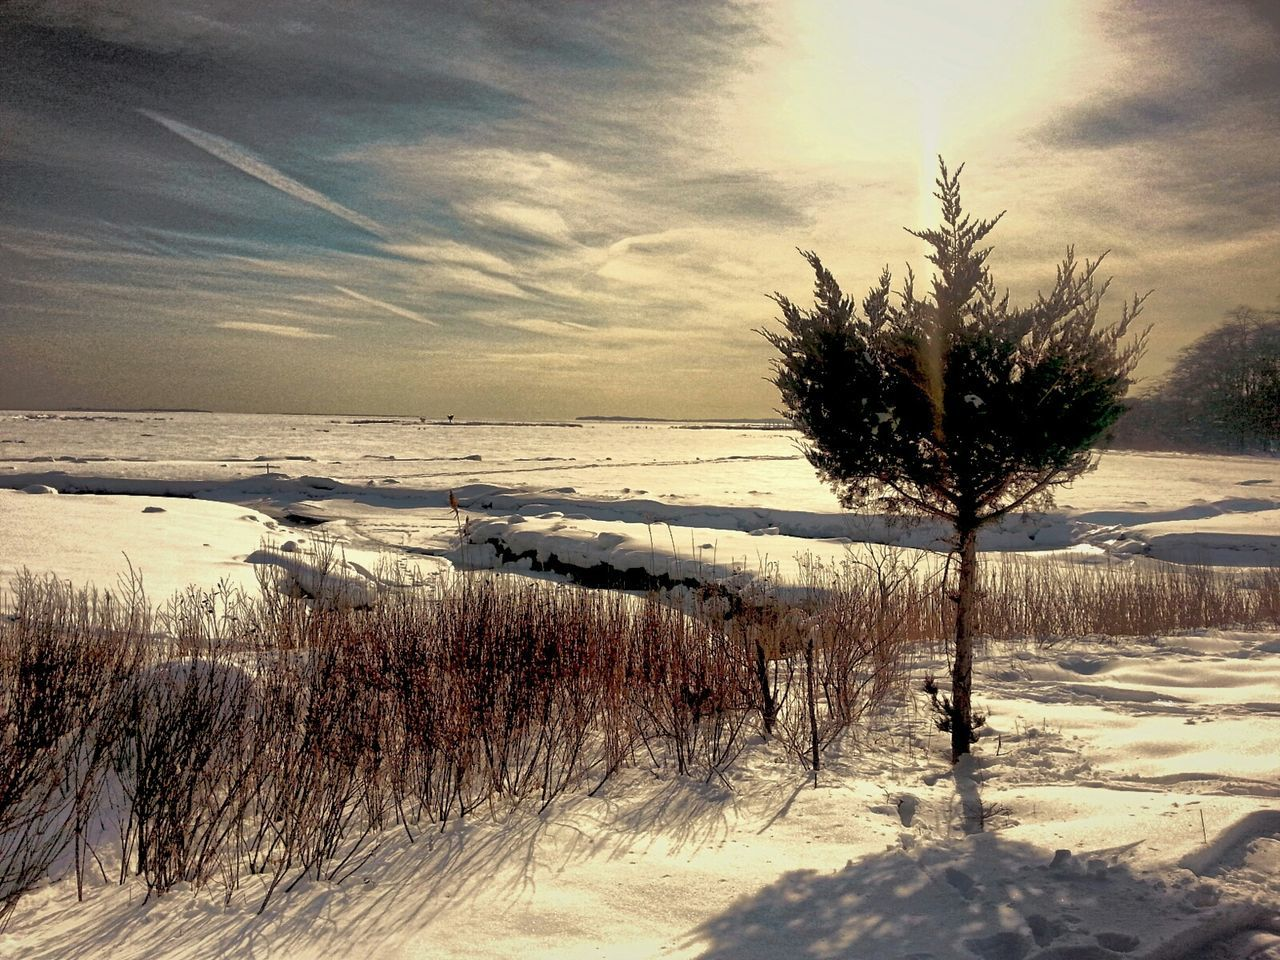 winter, cold temperature, snow, nature, scenics, beauty in nature, tranquility, tranquil scene, sky, tree, frozen, no people, outdoors, sunset, landscape, bare tree, water, day, horizon over water